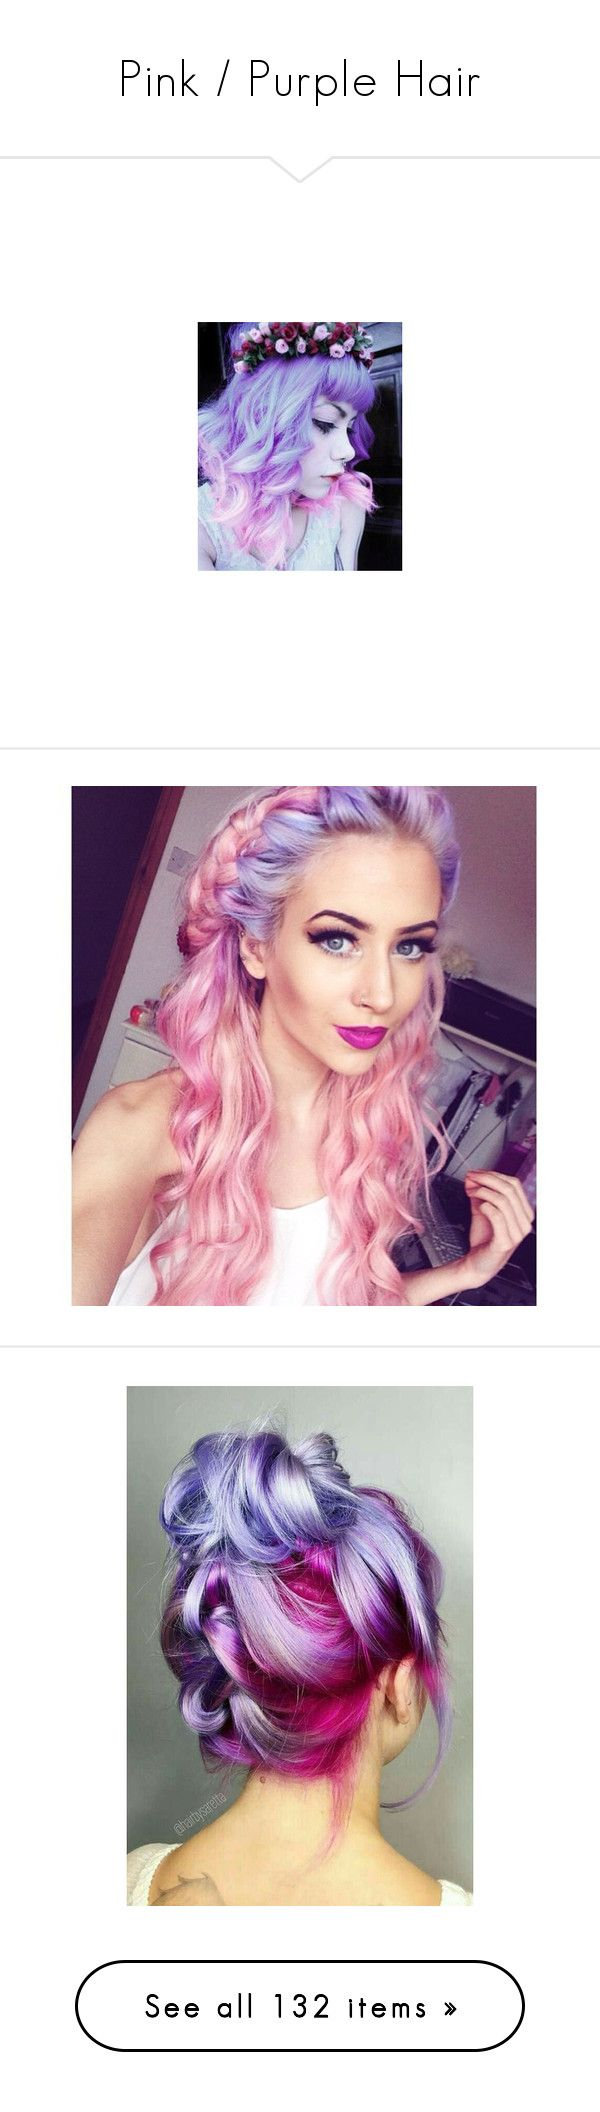 """Pink / Purple Hair"" by mildabas ❤ liked on Polyvore featuring hair, accessories, hair accessories, crown hair accessories, braid crown, jackets, beauty products, carrington durham, brianna and carrington"